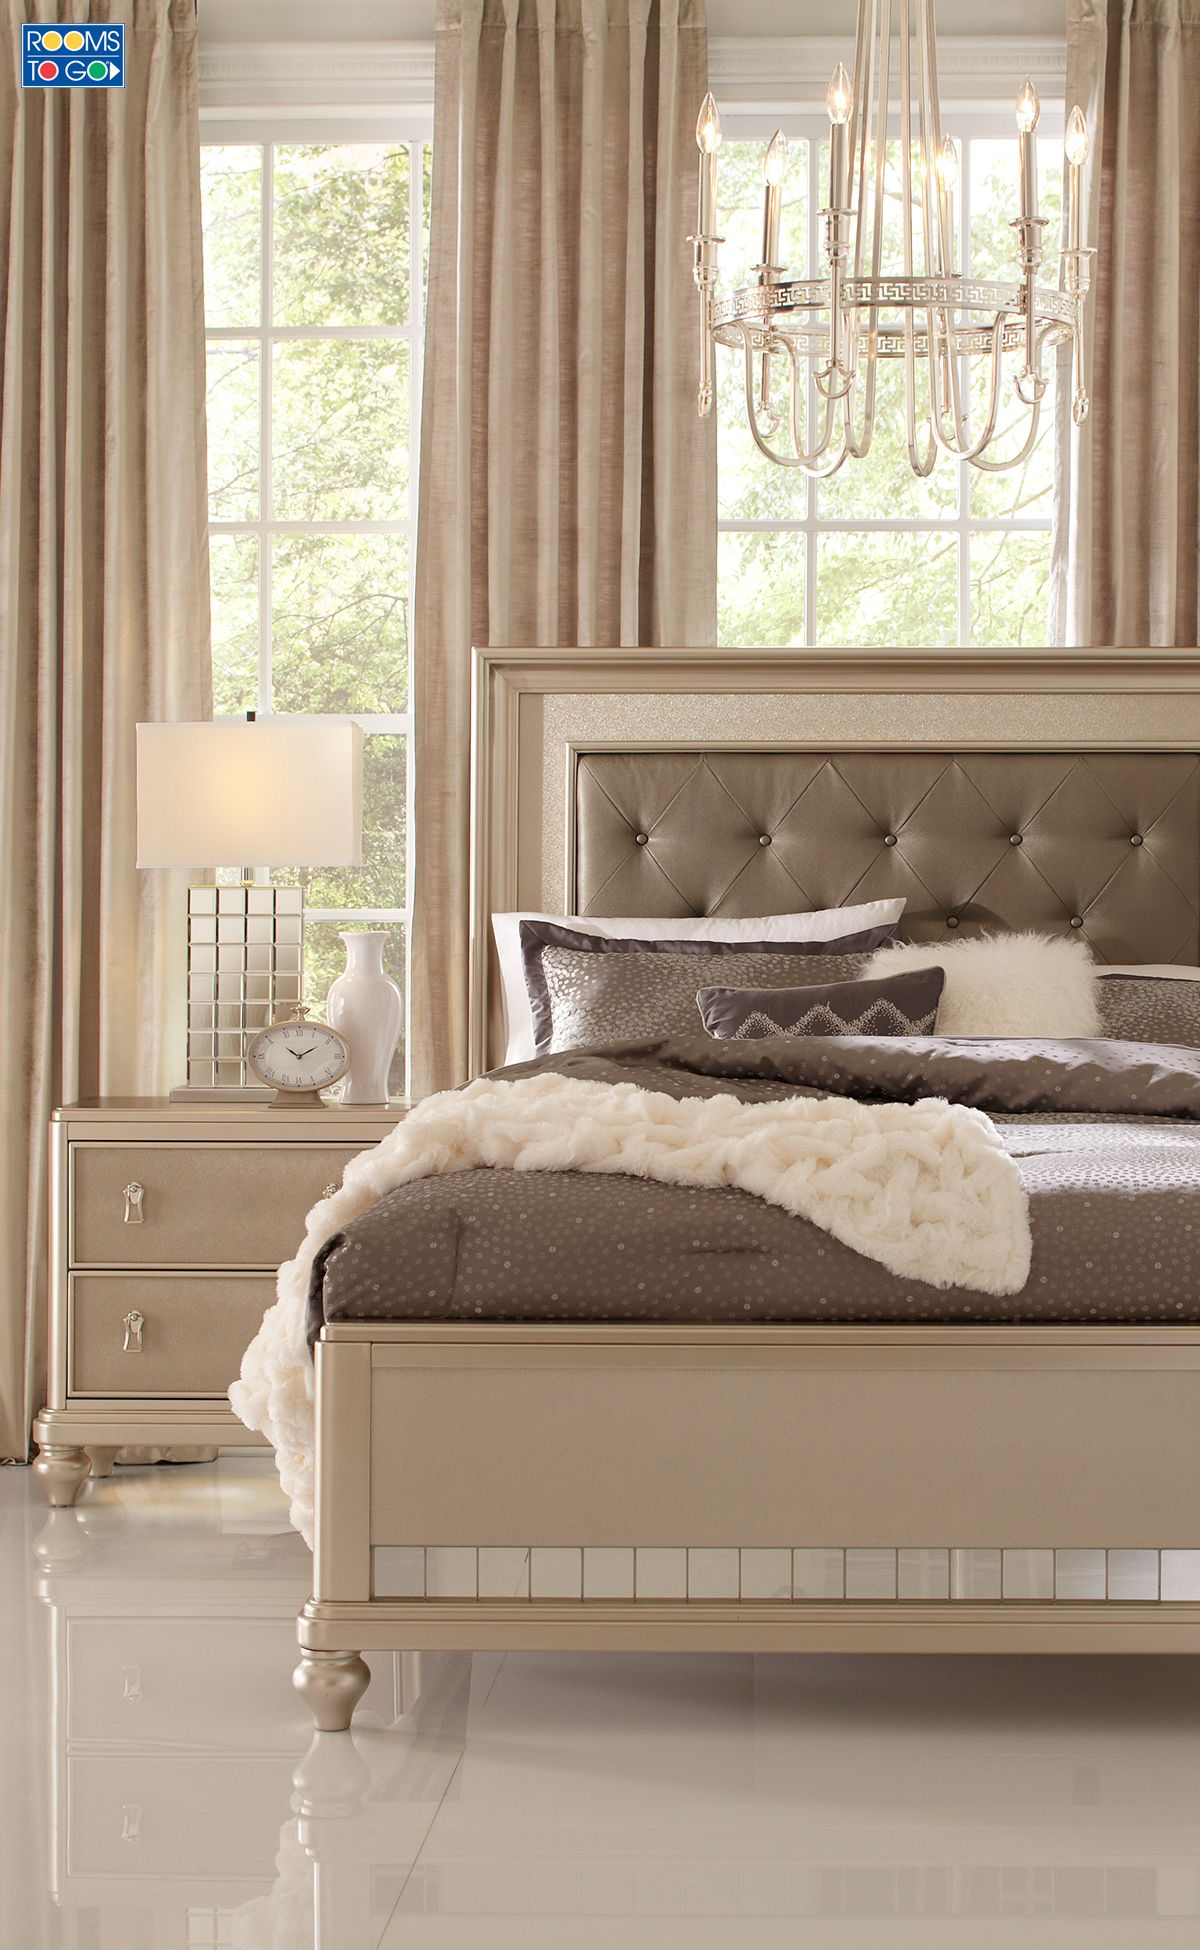 Sofia Vergara Paris Silver 5 Pc Queen Bedroom In 2019 My